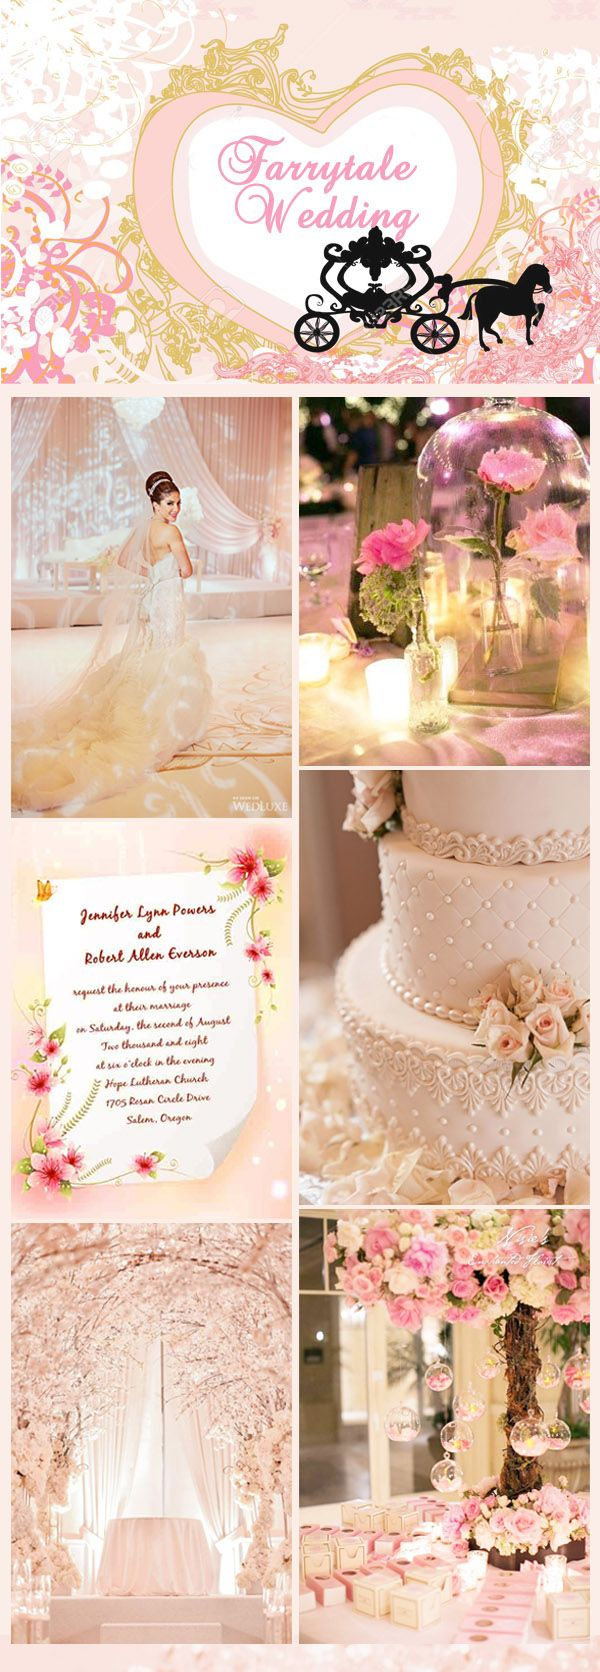 romantic mordern fairytale wedding ideas and invitations